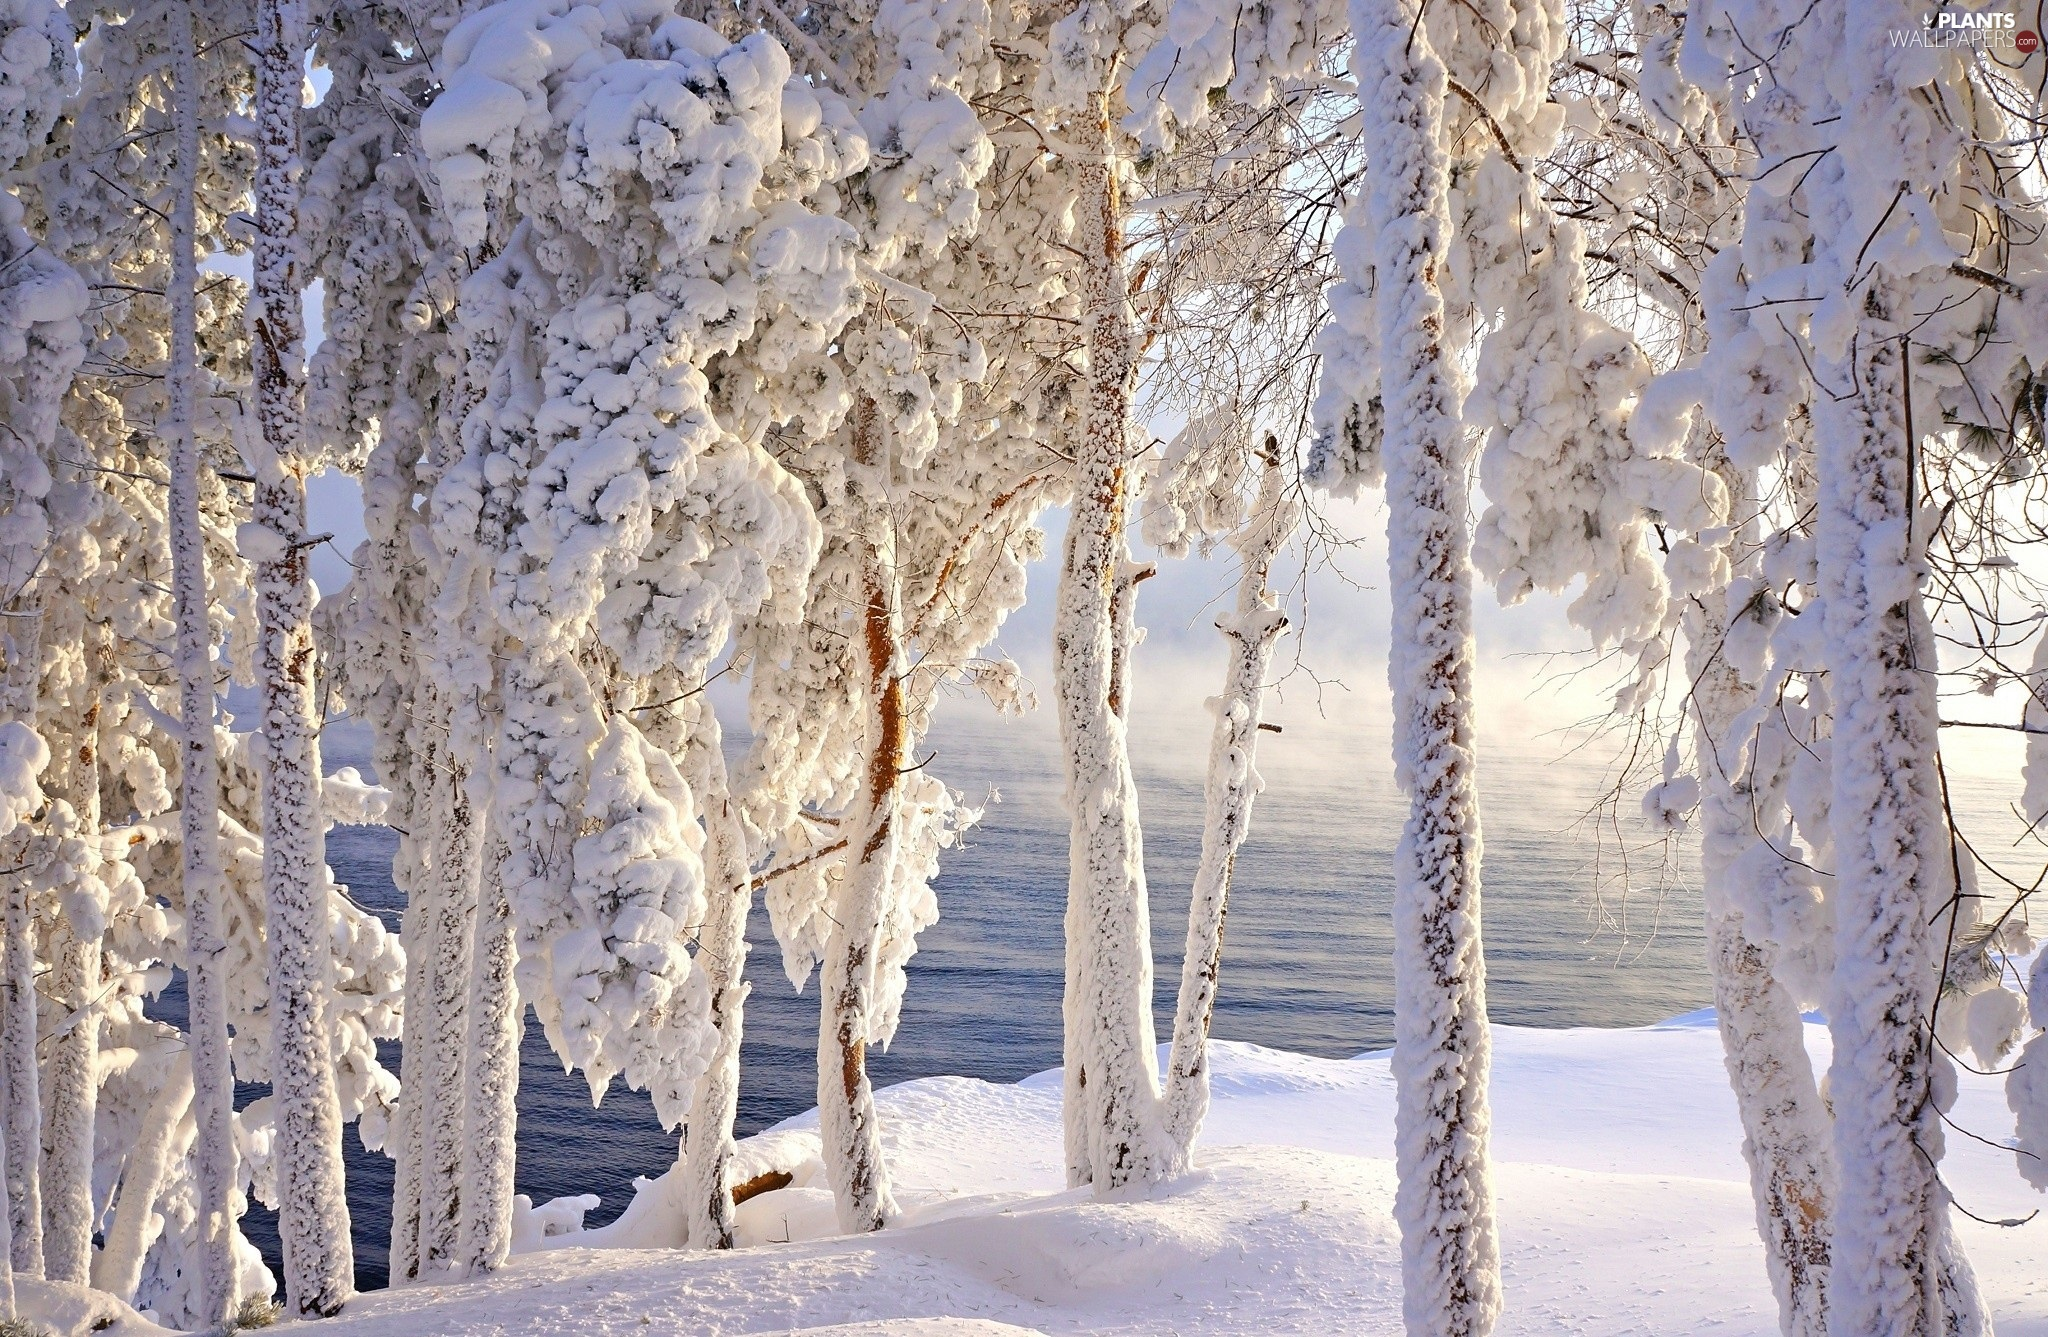 Snowy, viewes, water, trees